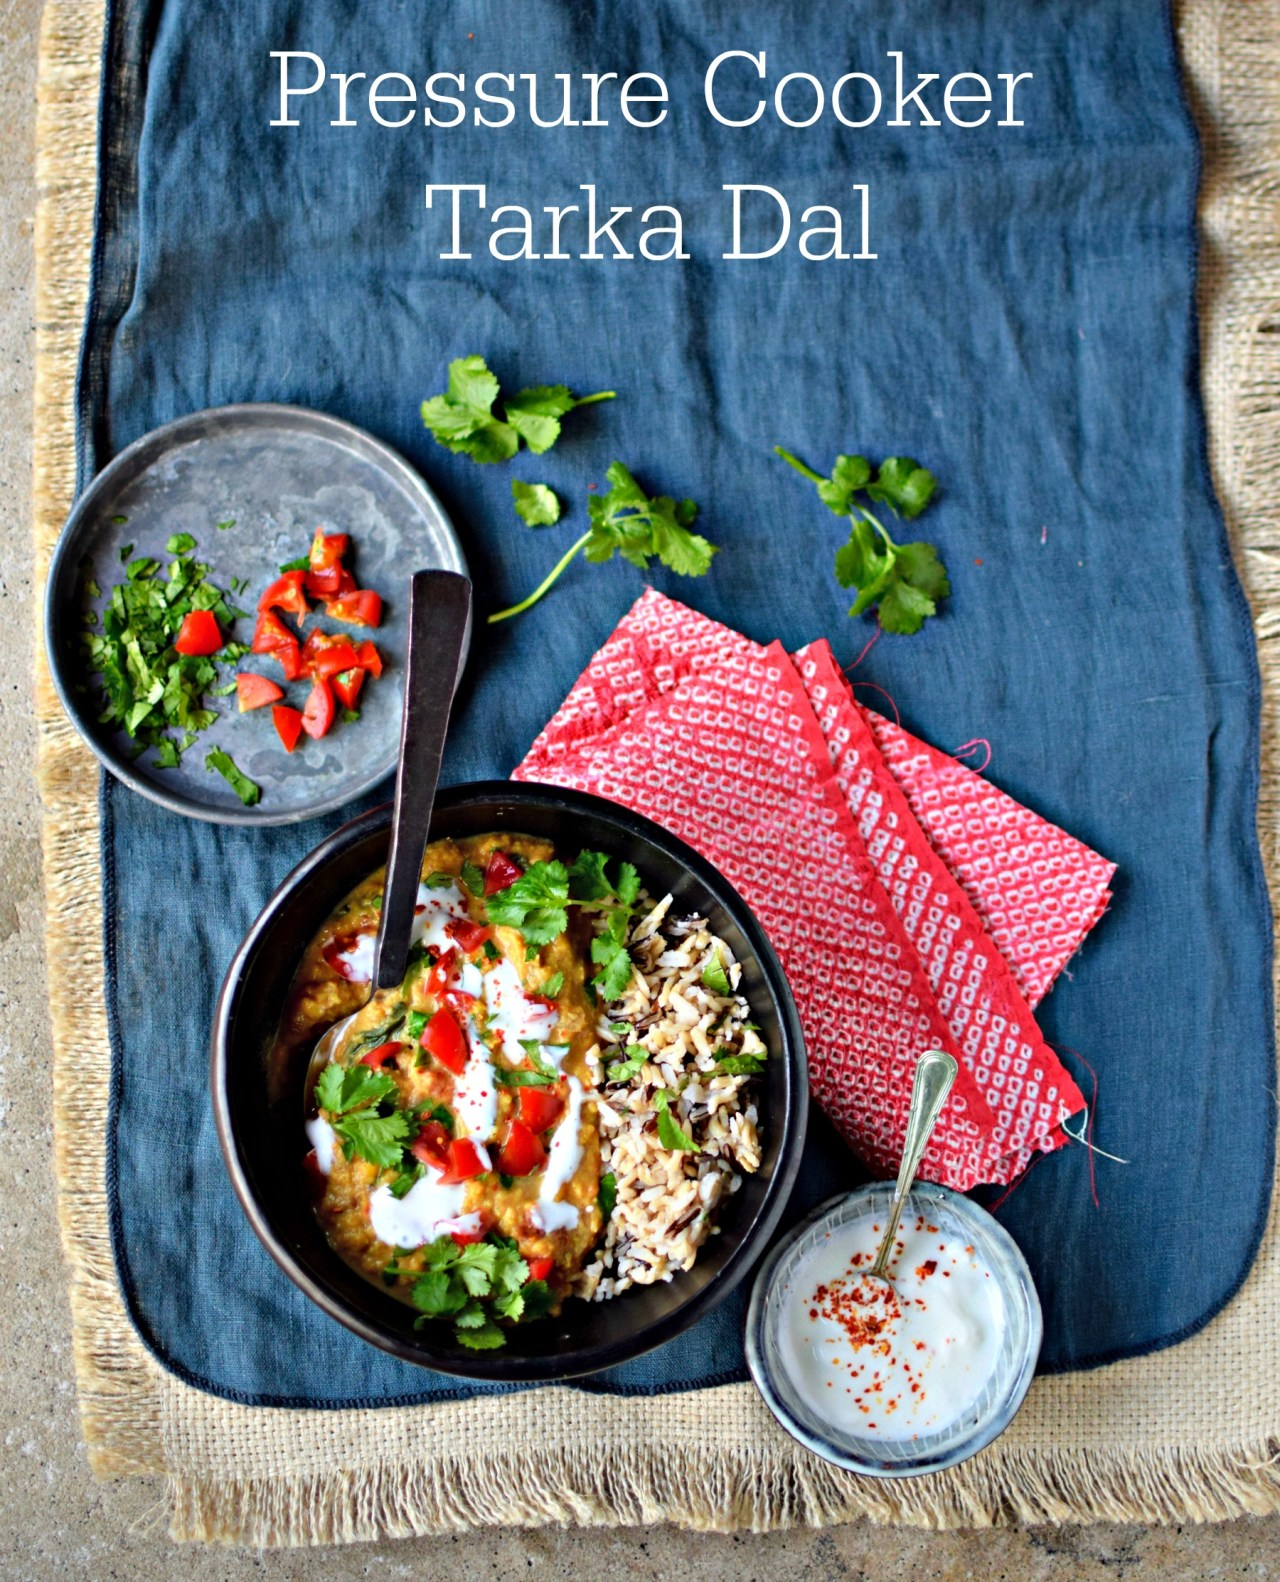 If you are craving dal but time is tight, use your pressure cooker to make Food To Glow's healthy, flavour-jammed tarka dal in less than 20 minutes. Yes, 20 minutes. Vegan Indian food made easy and family-friendly. You will also find a top tip for getting the most nutrition from turmeric.